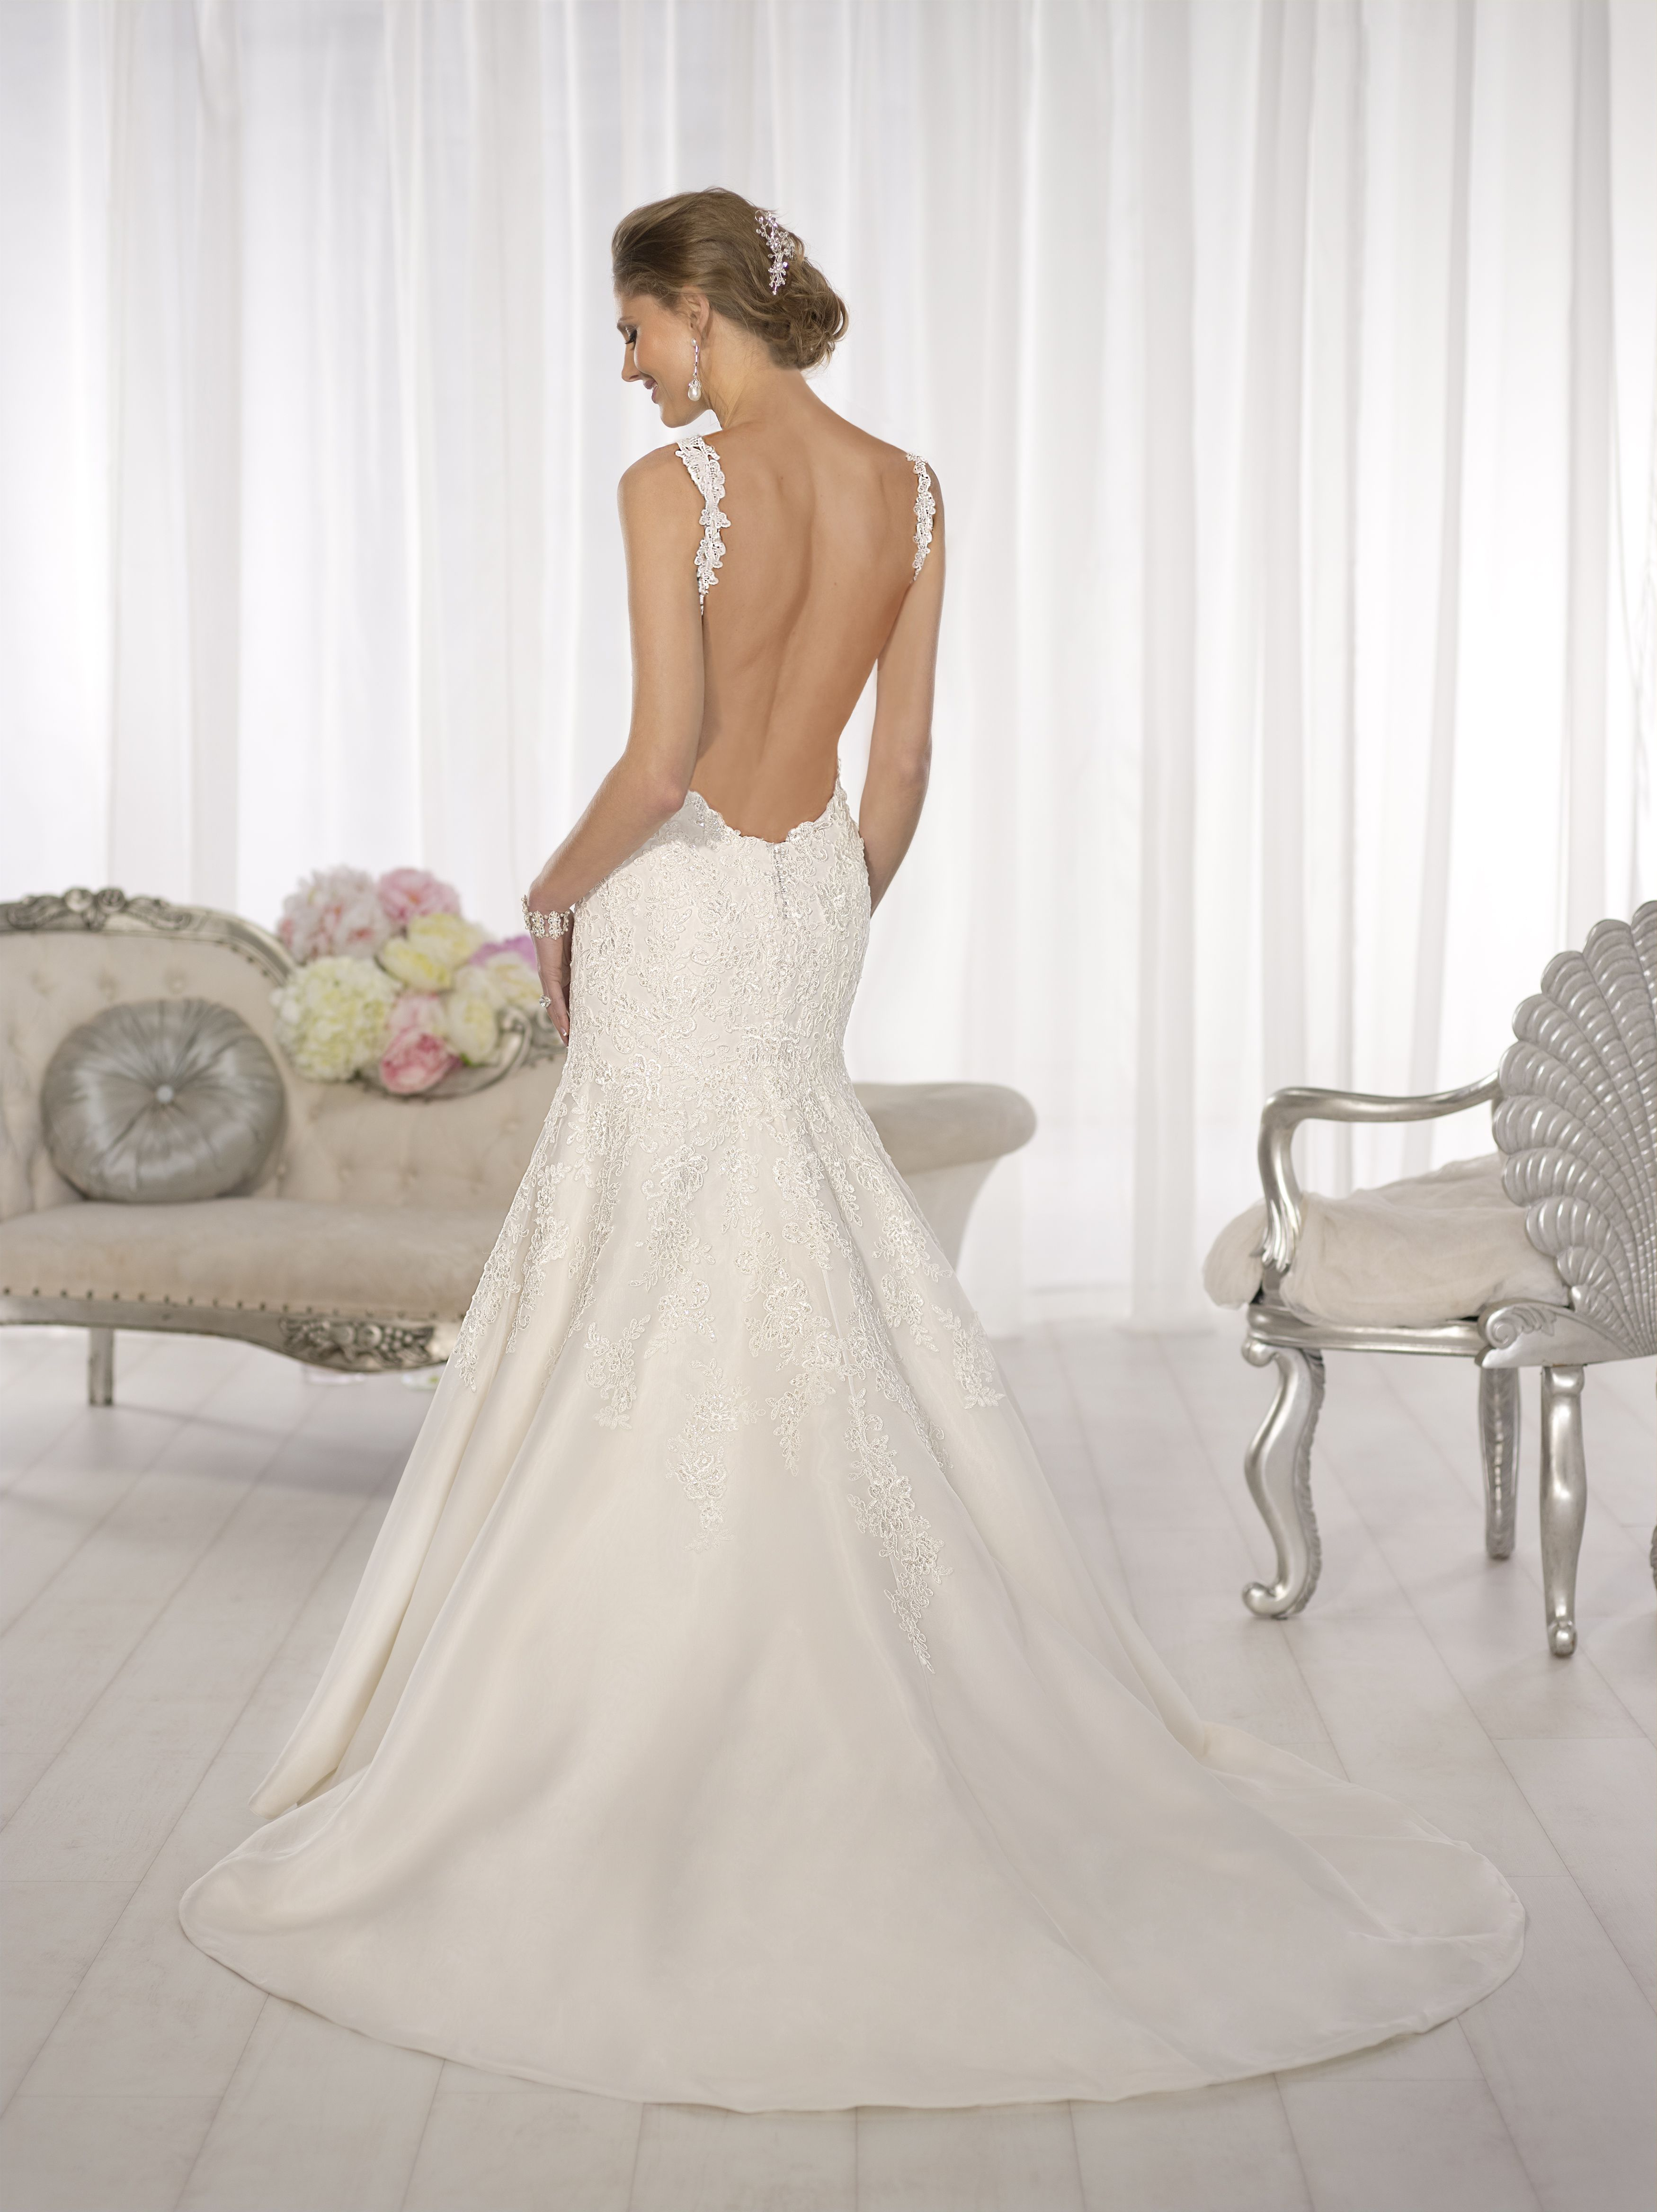 D1616, Low back wedding gown, Lace wedding gown, Southern